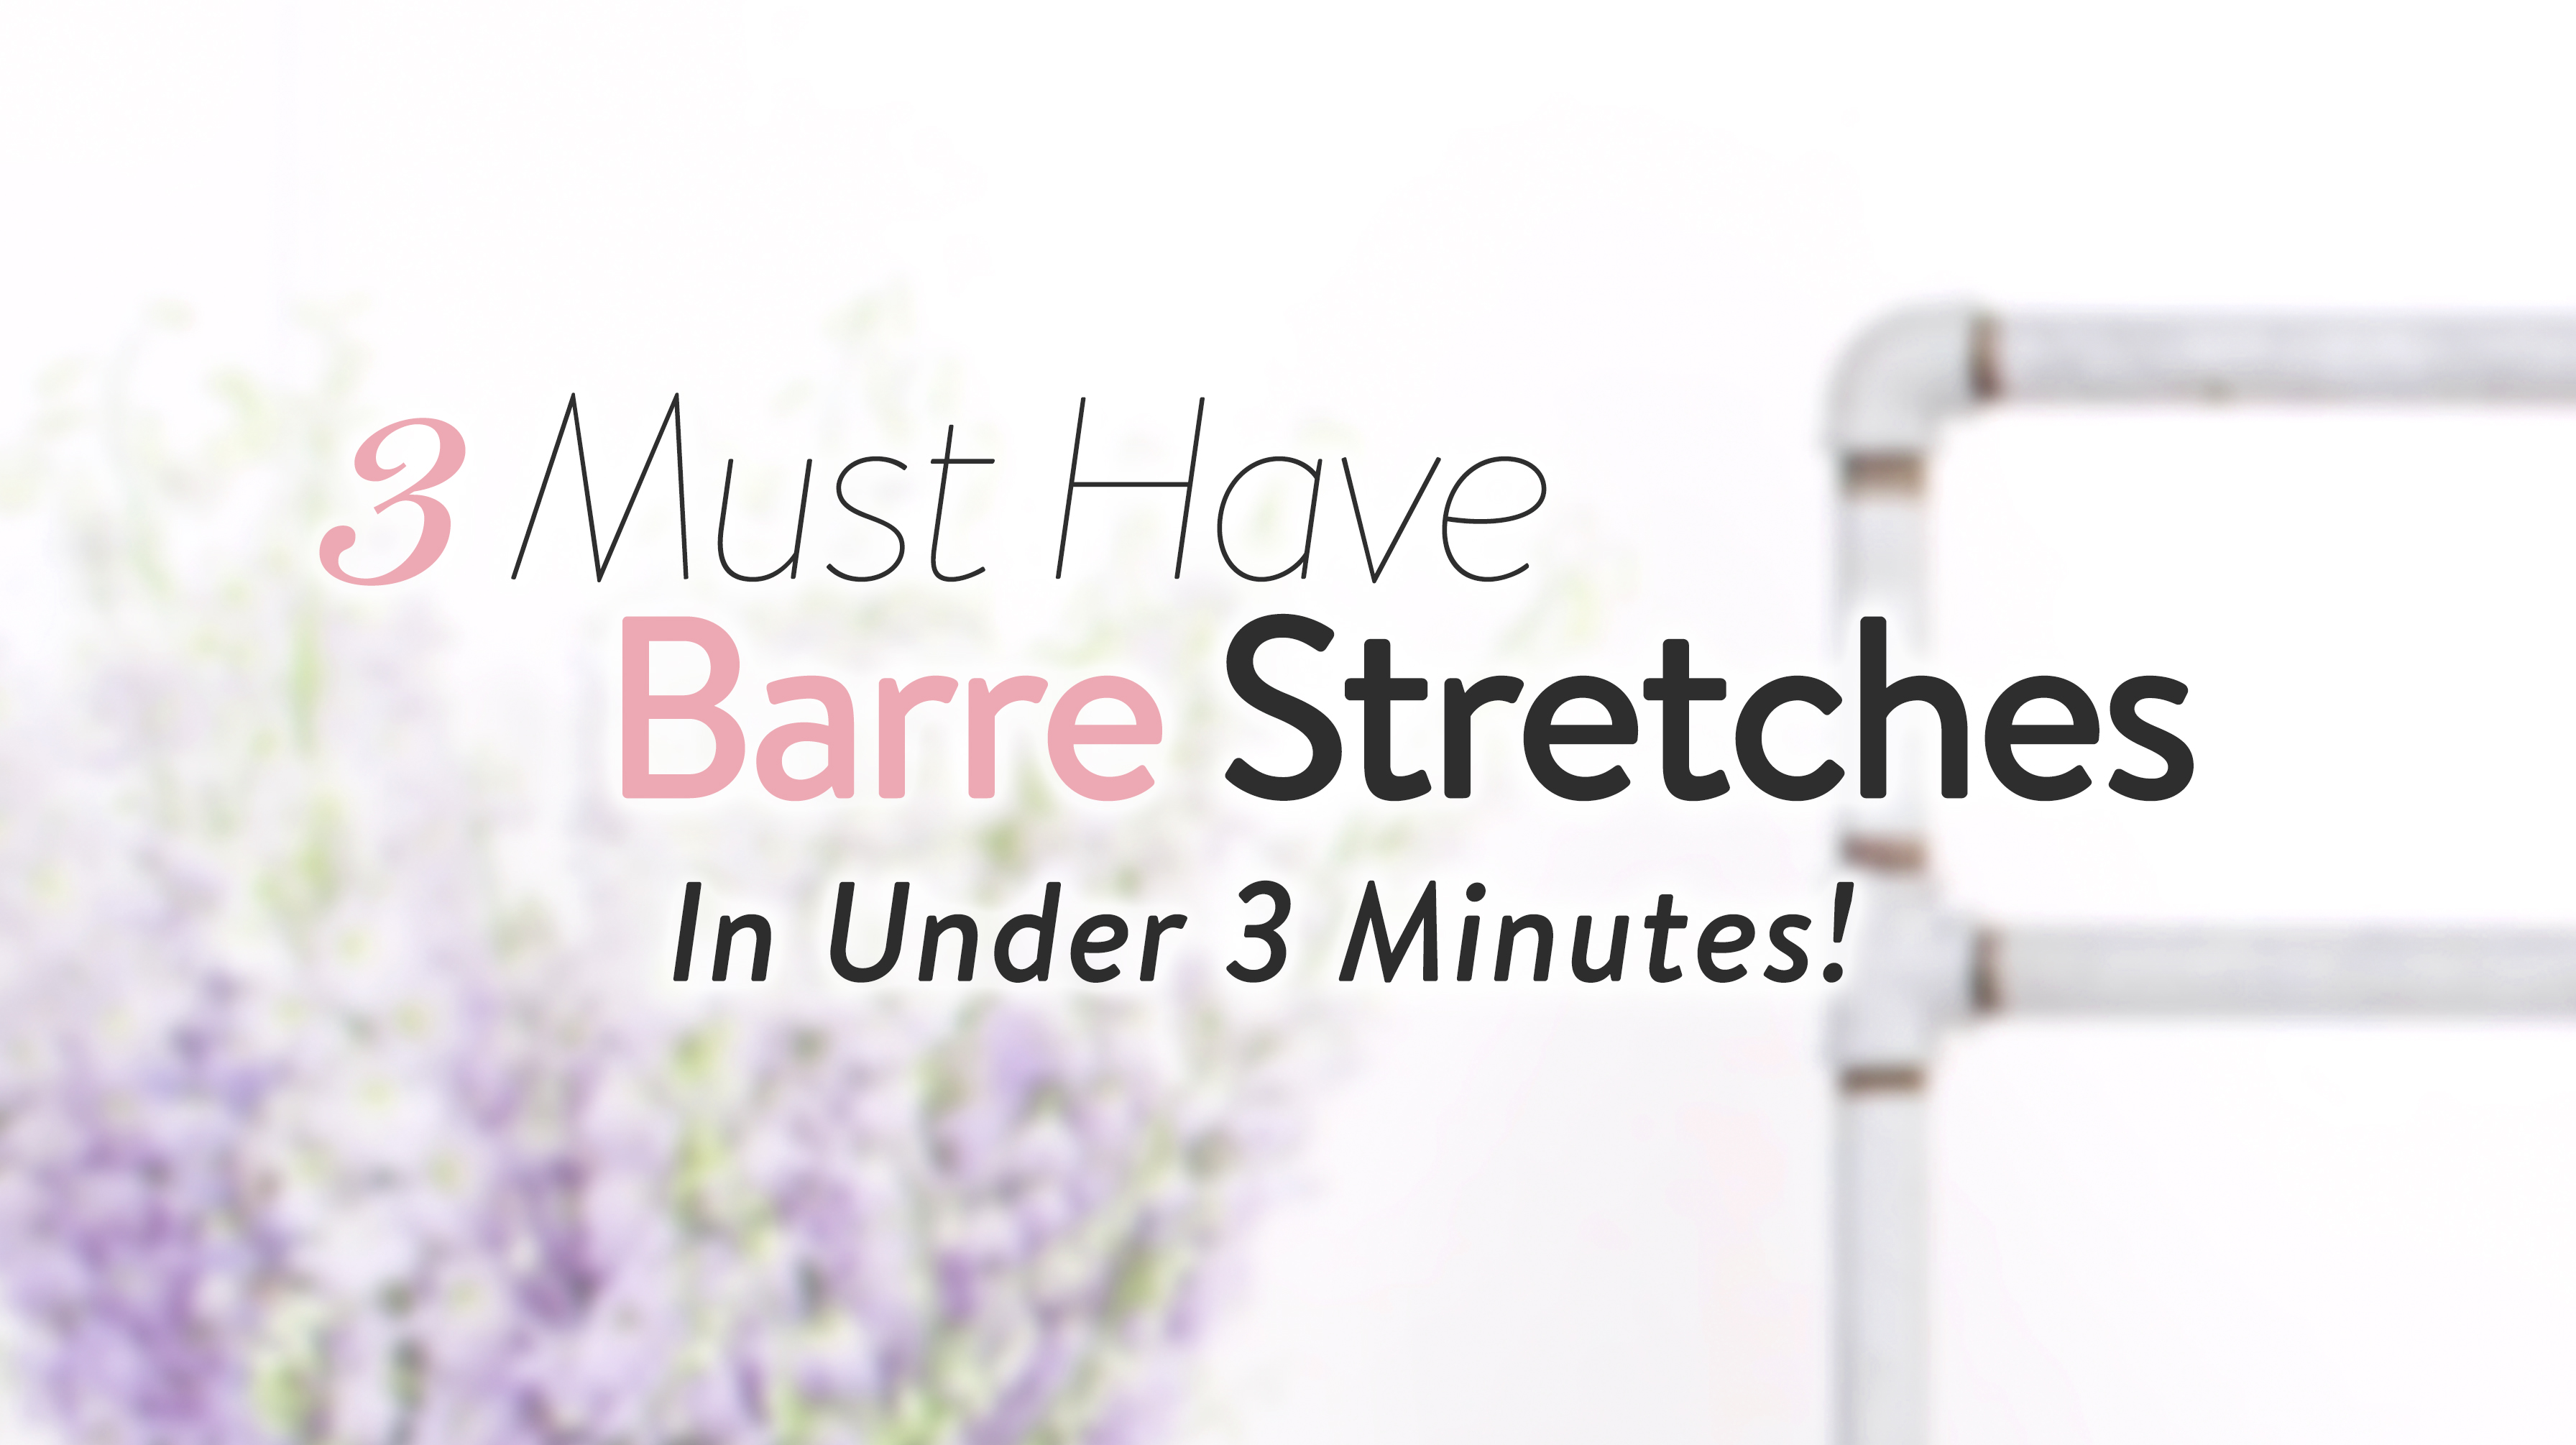 3 Must Have Barre Stretches!